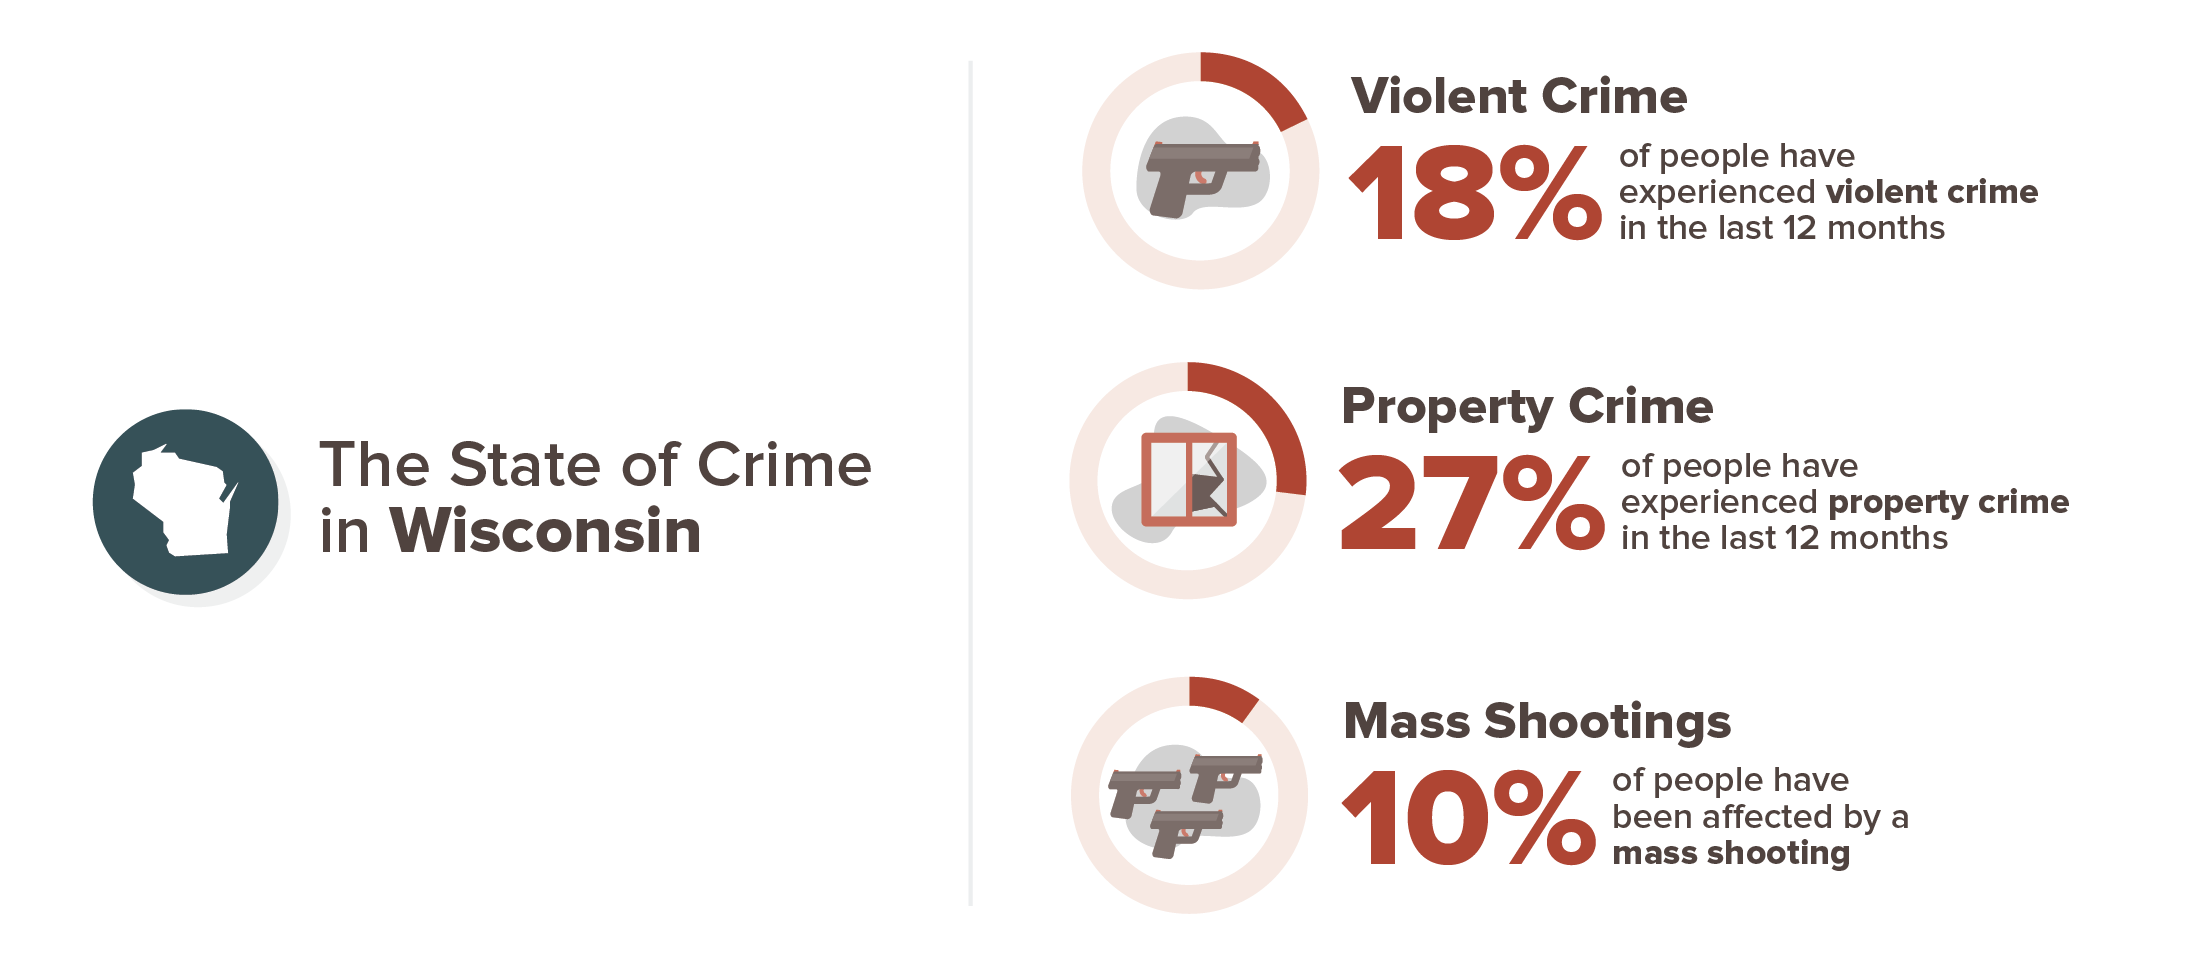 Wisconsin crime experience infographic